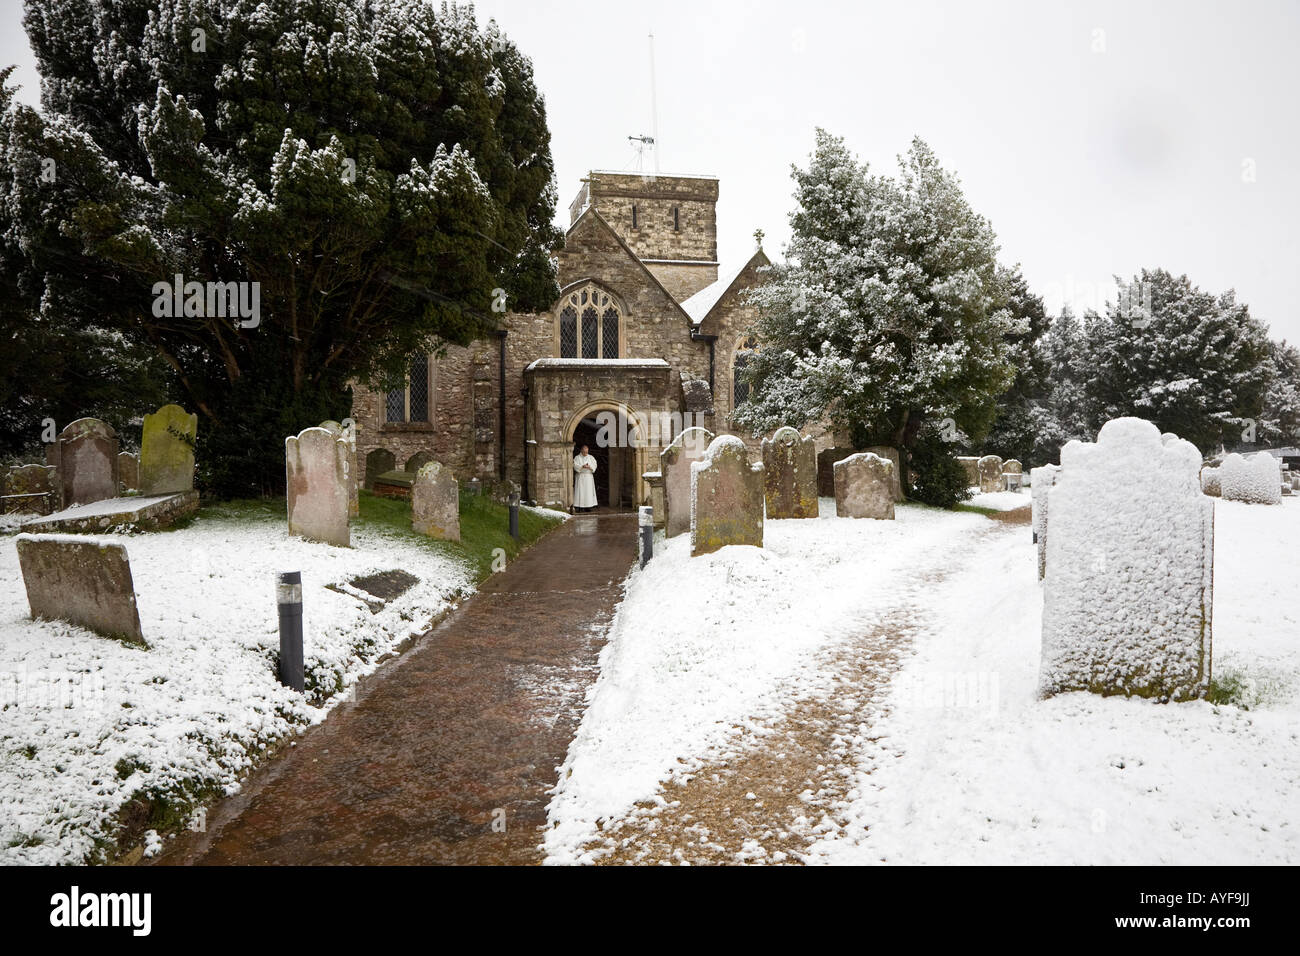 All Saints Church Fawley in the snow - Stock Image